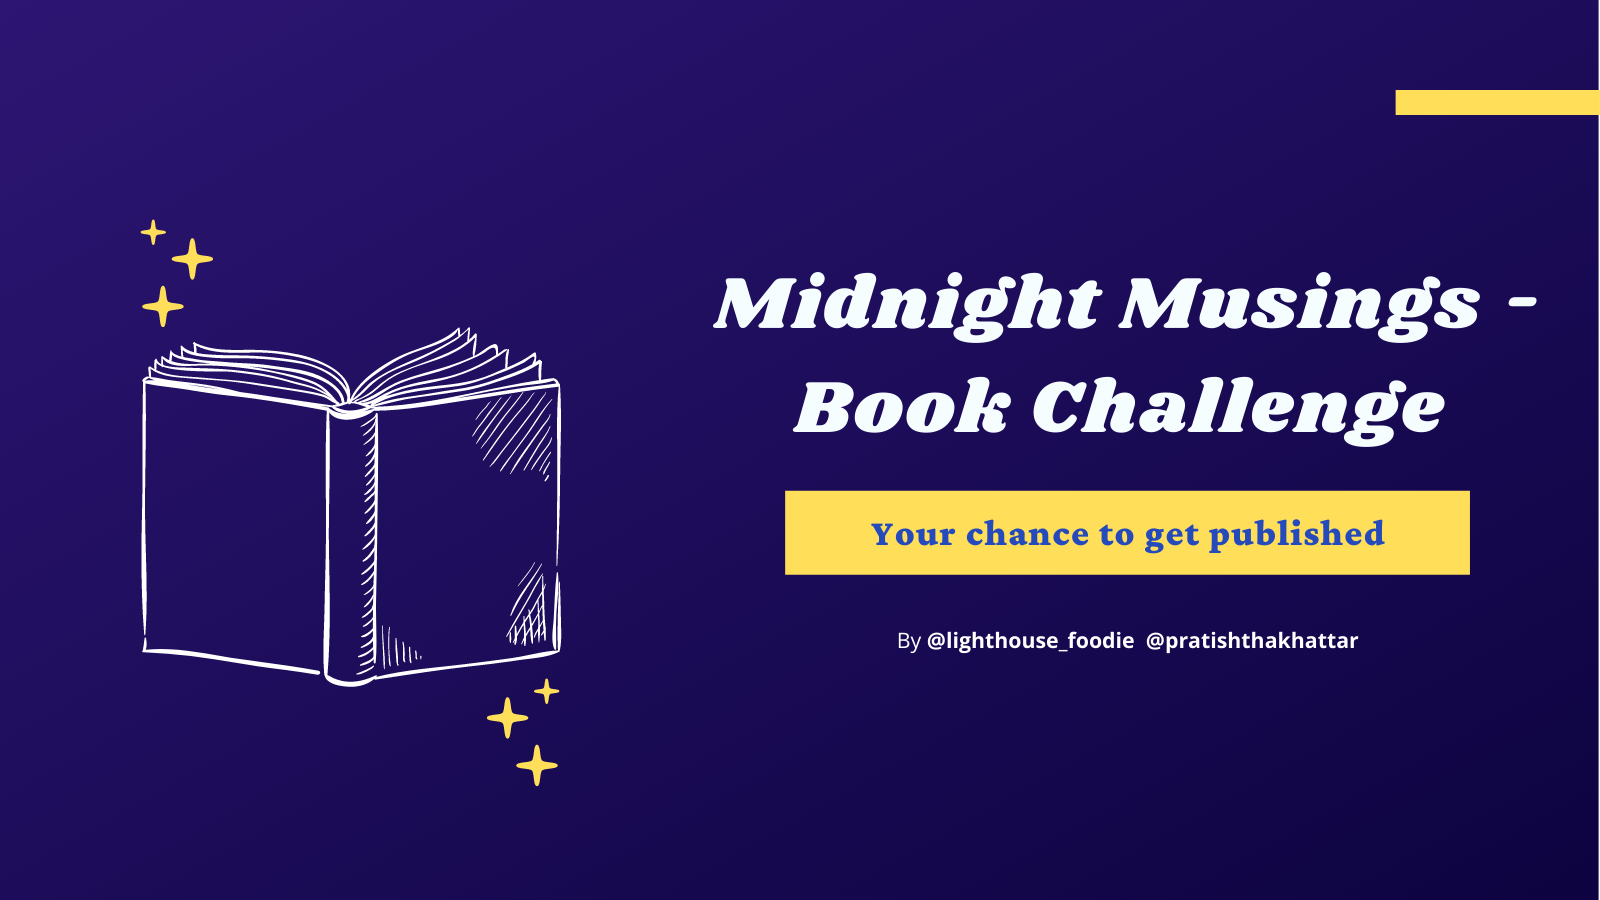 Midnight Musings (Get Published in a Book) - Writing Challenge